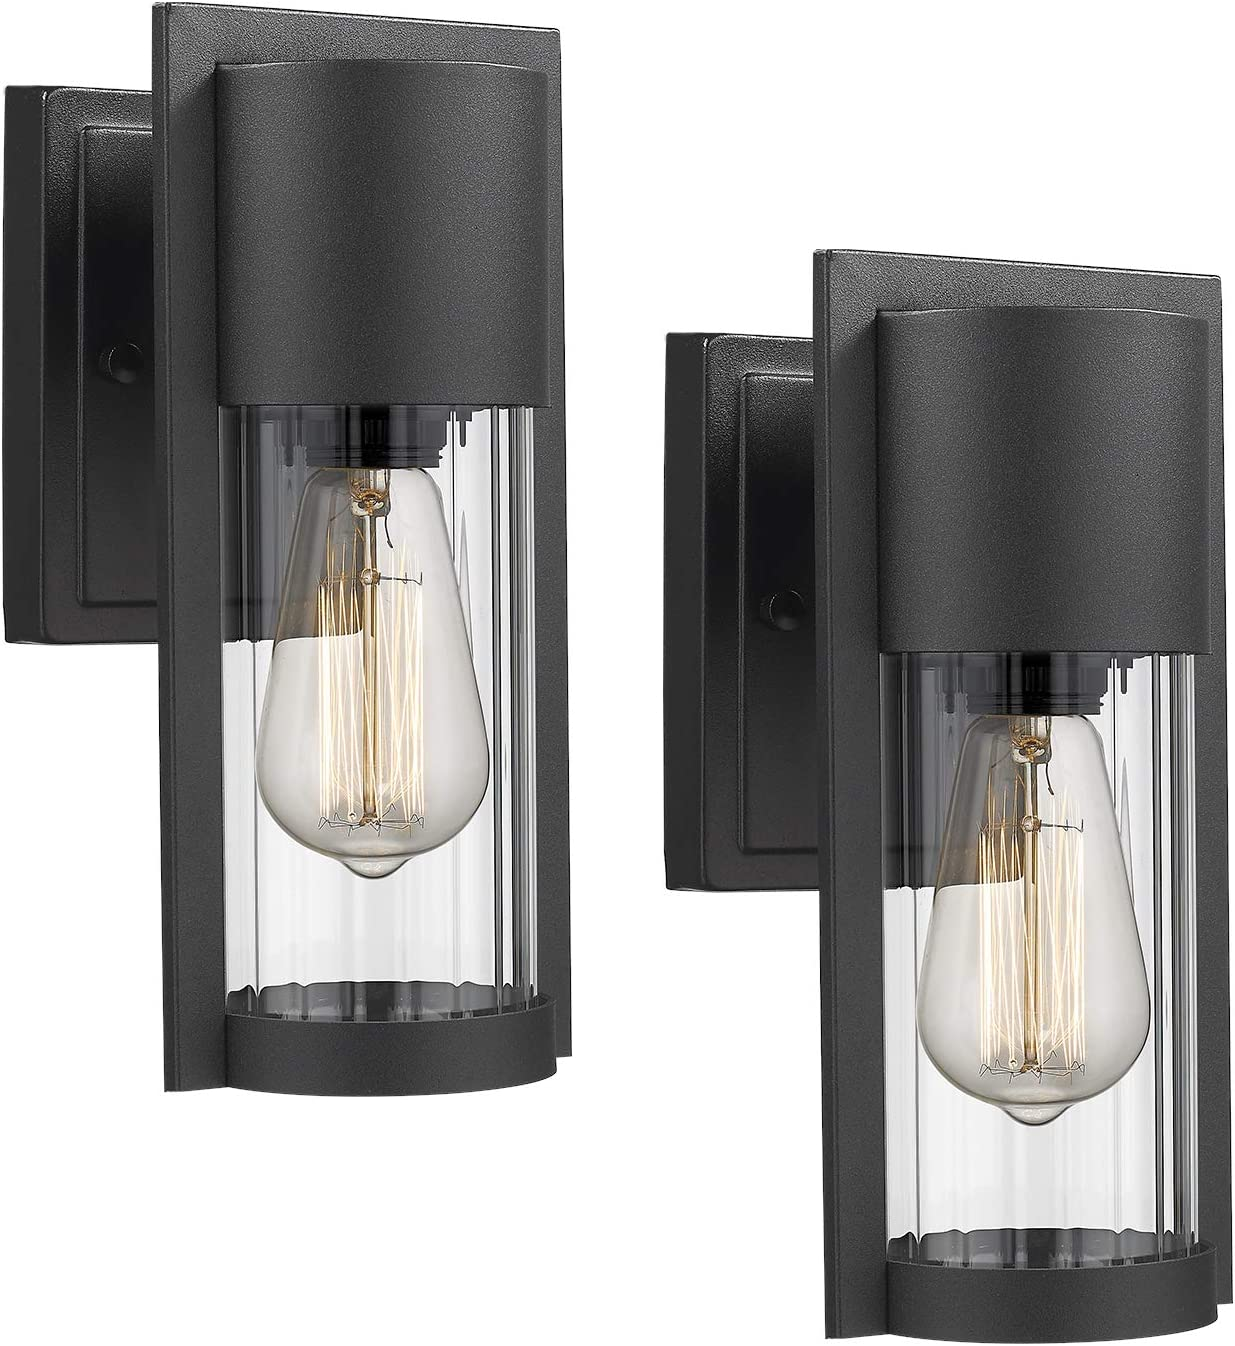 Osimir Exterior Wall Mount Light 2 Pack 1 Light Outdoor Wall Sconce In Black Finish With Clear Ribbed Glass Lamp Shade 2254 1w 2pk Home Improvement Amazon Com